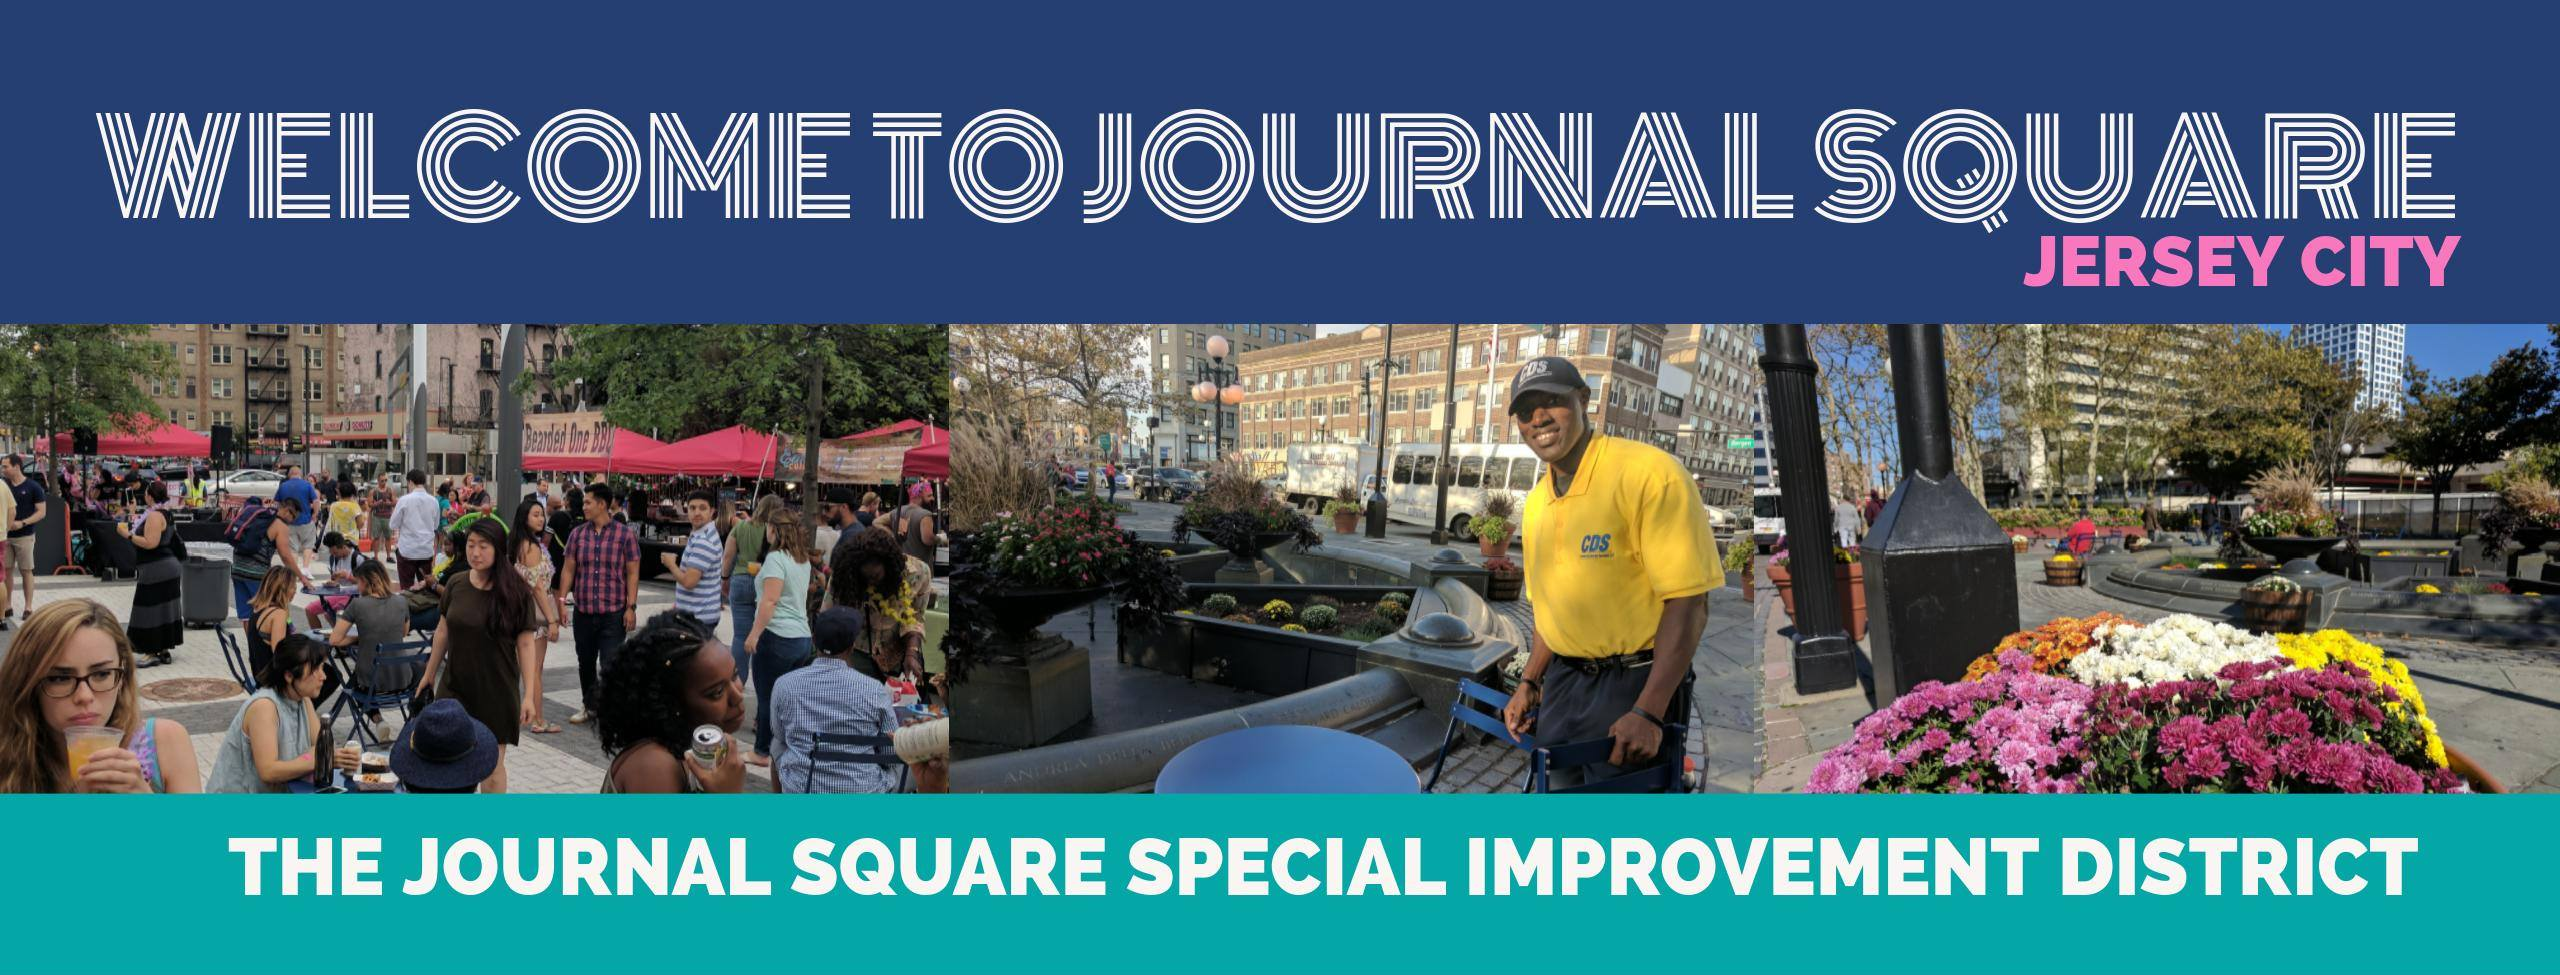 Welcome to Journal Square